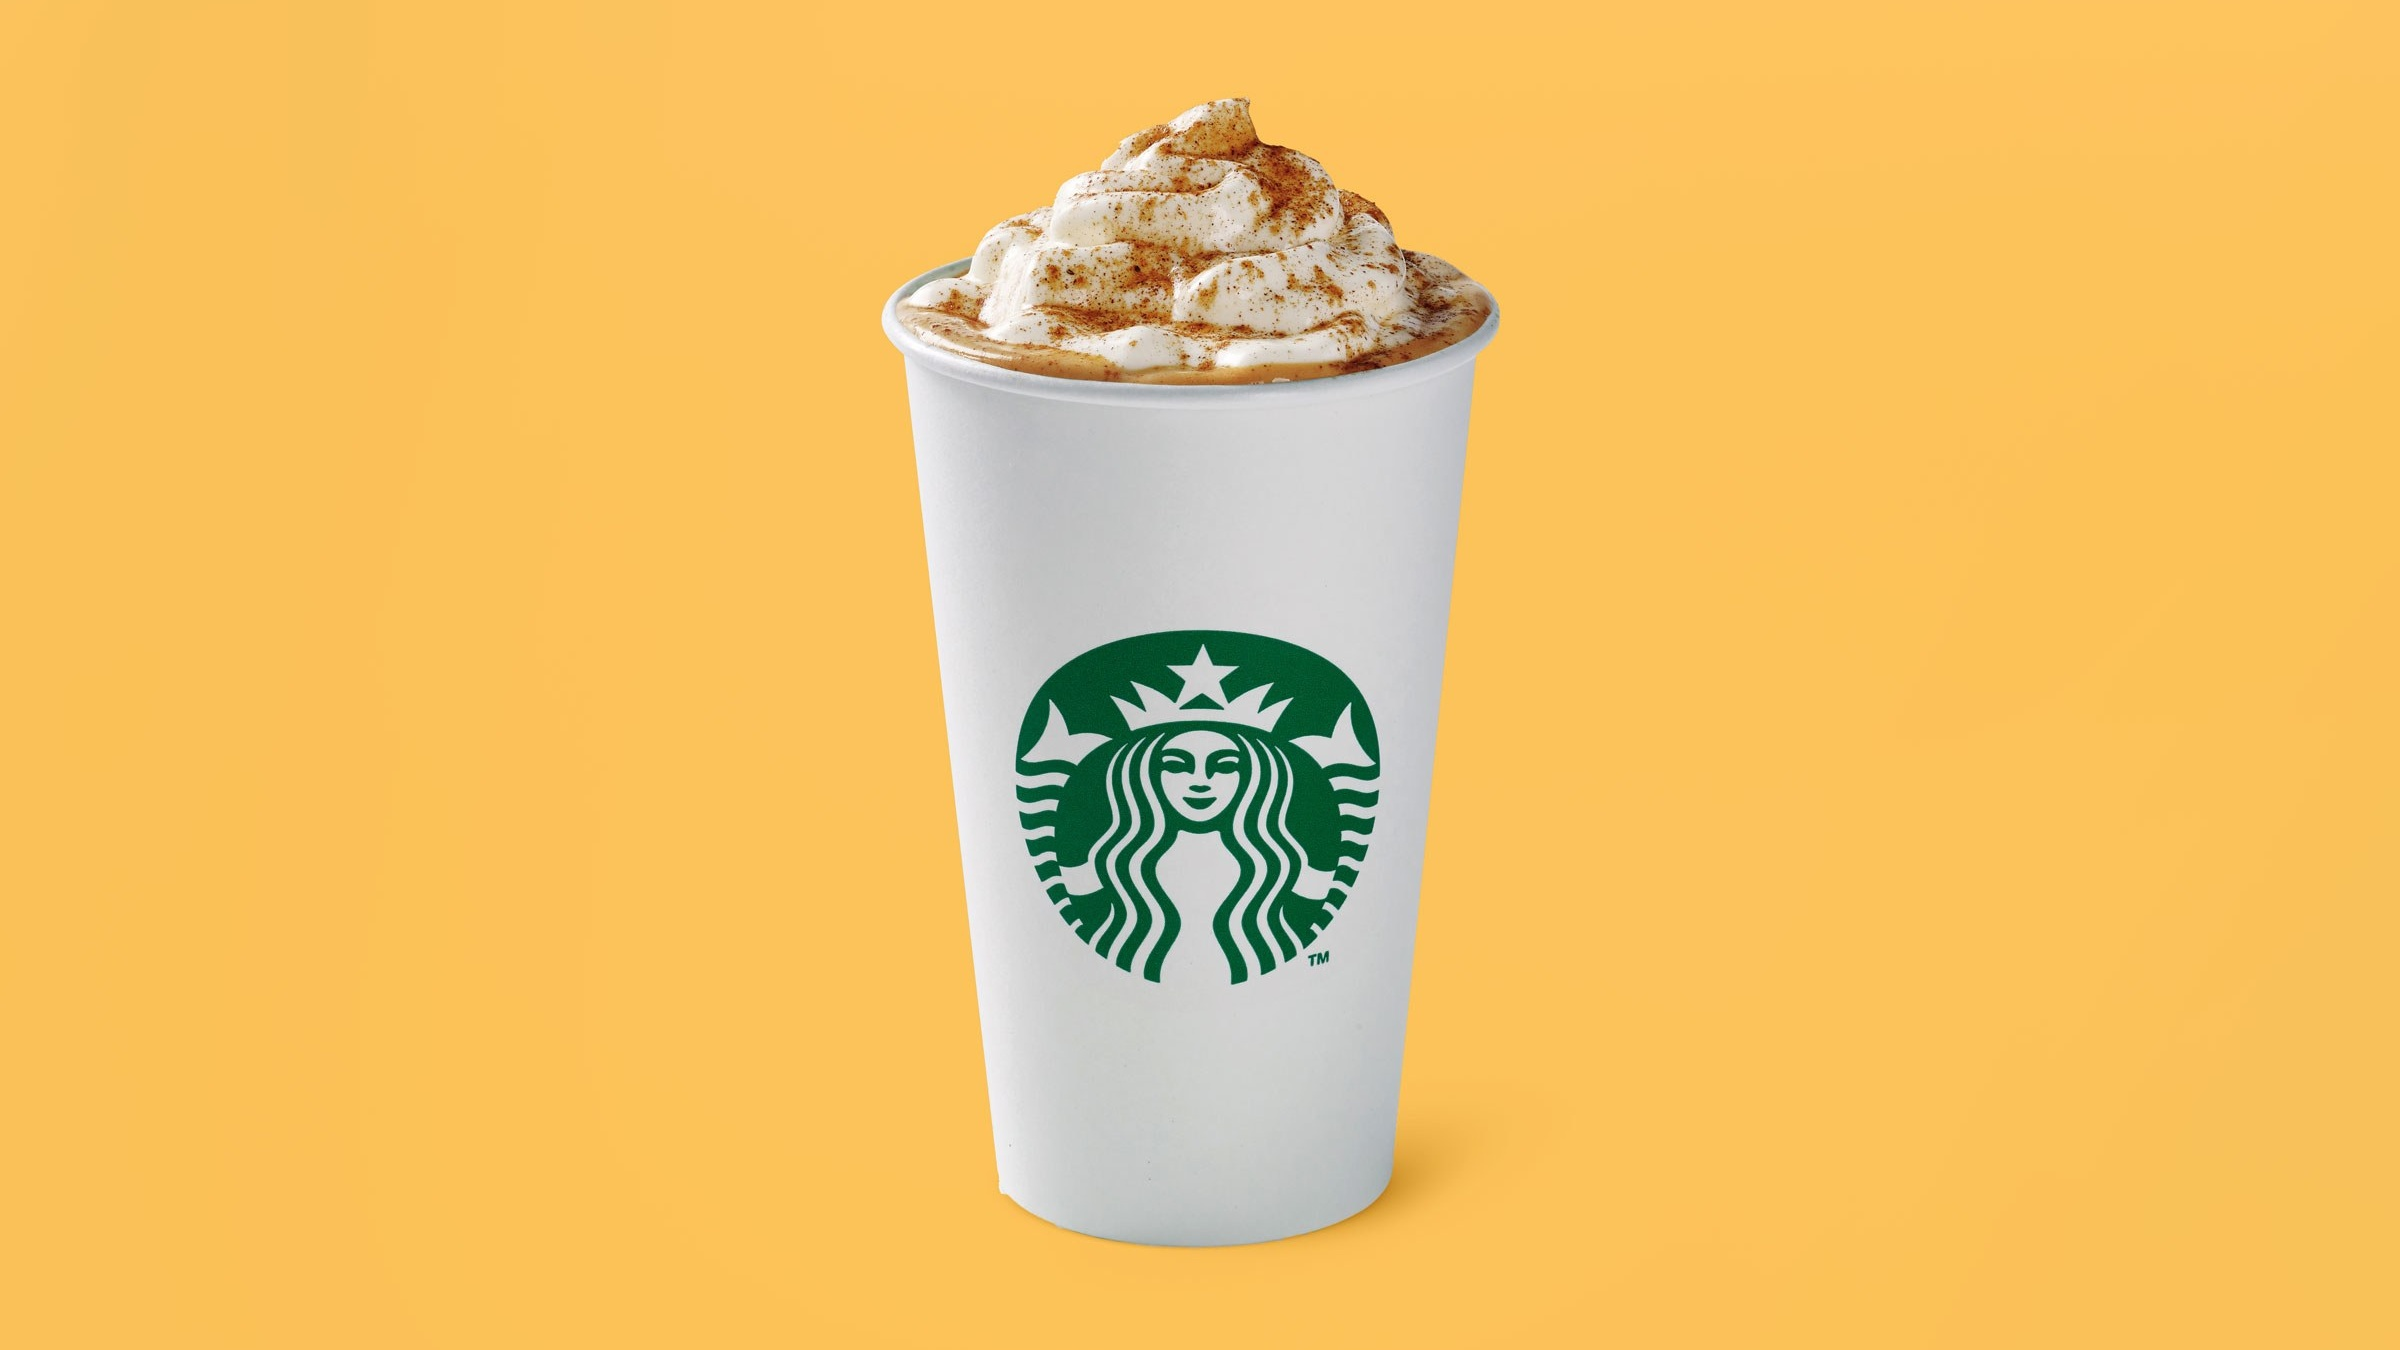 starbucks-pumpkin-spice-latte Cropped